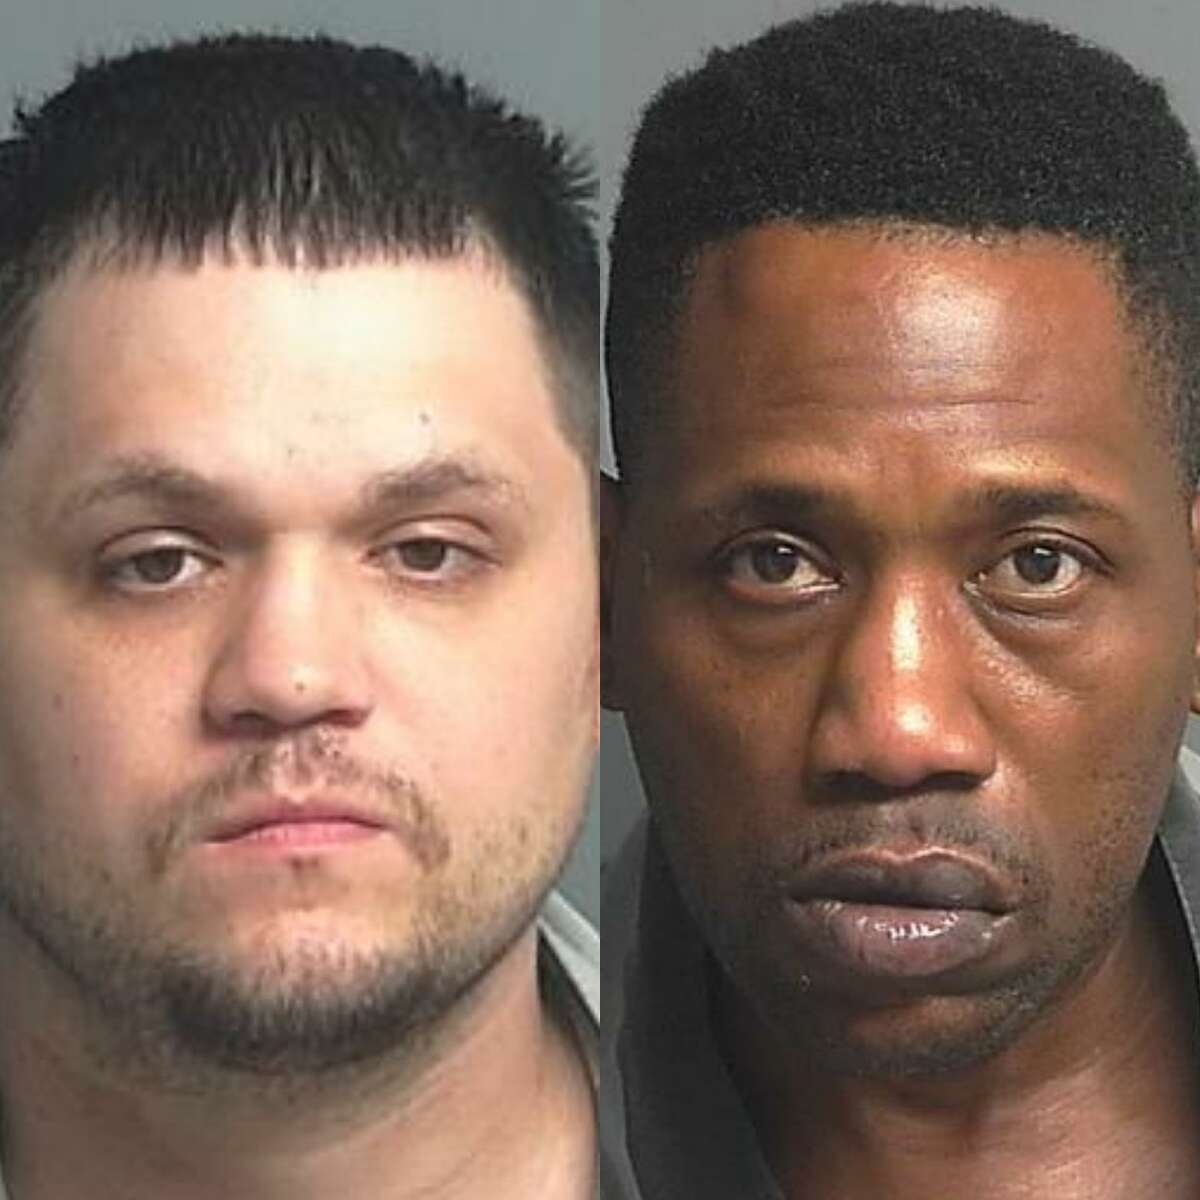 Joshua Albert Regalado, 29, of Richmond, left, and Jamin Renfroe, 45, of Cordova, Tenn., right, are charged with promotion of prostitution, a third-degree felony.